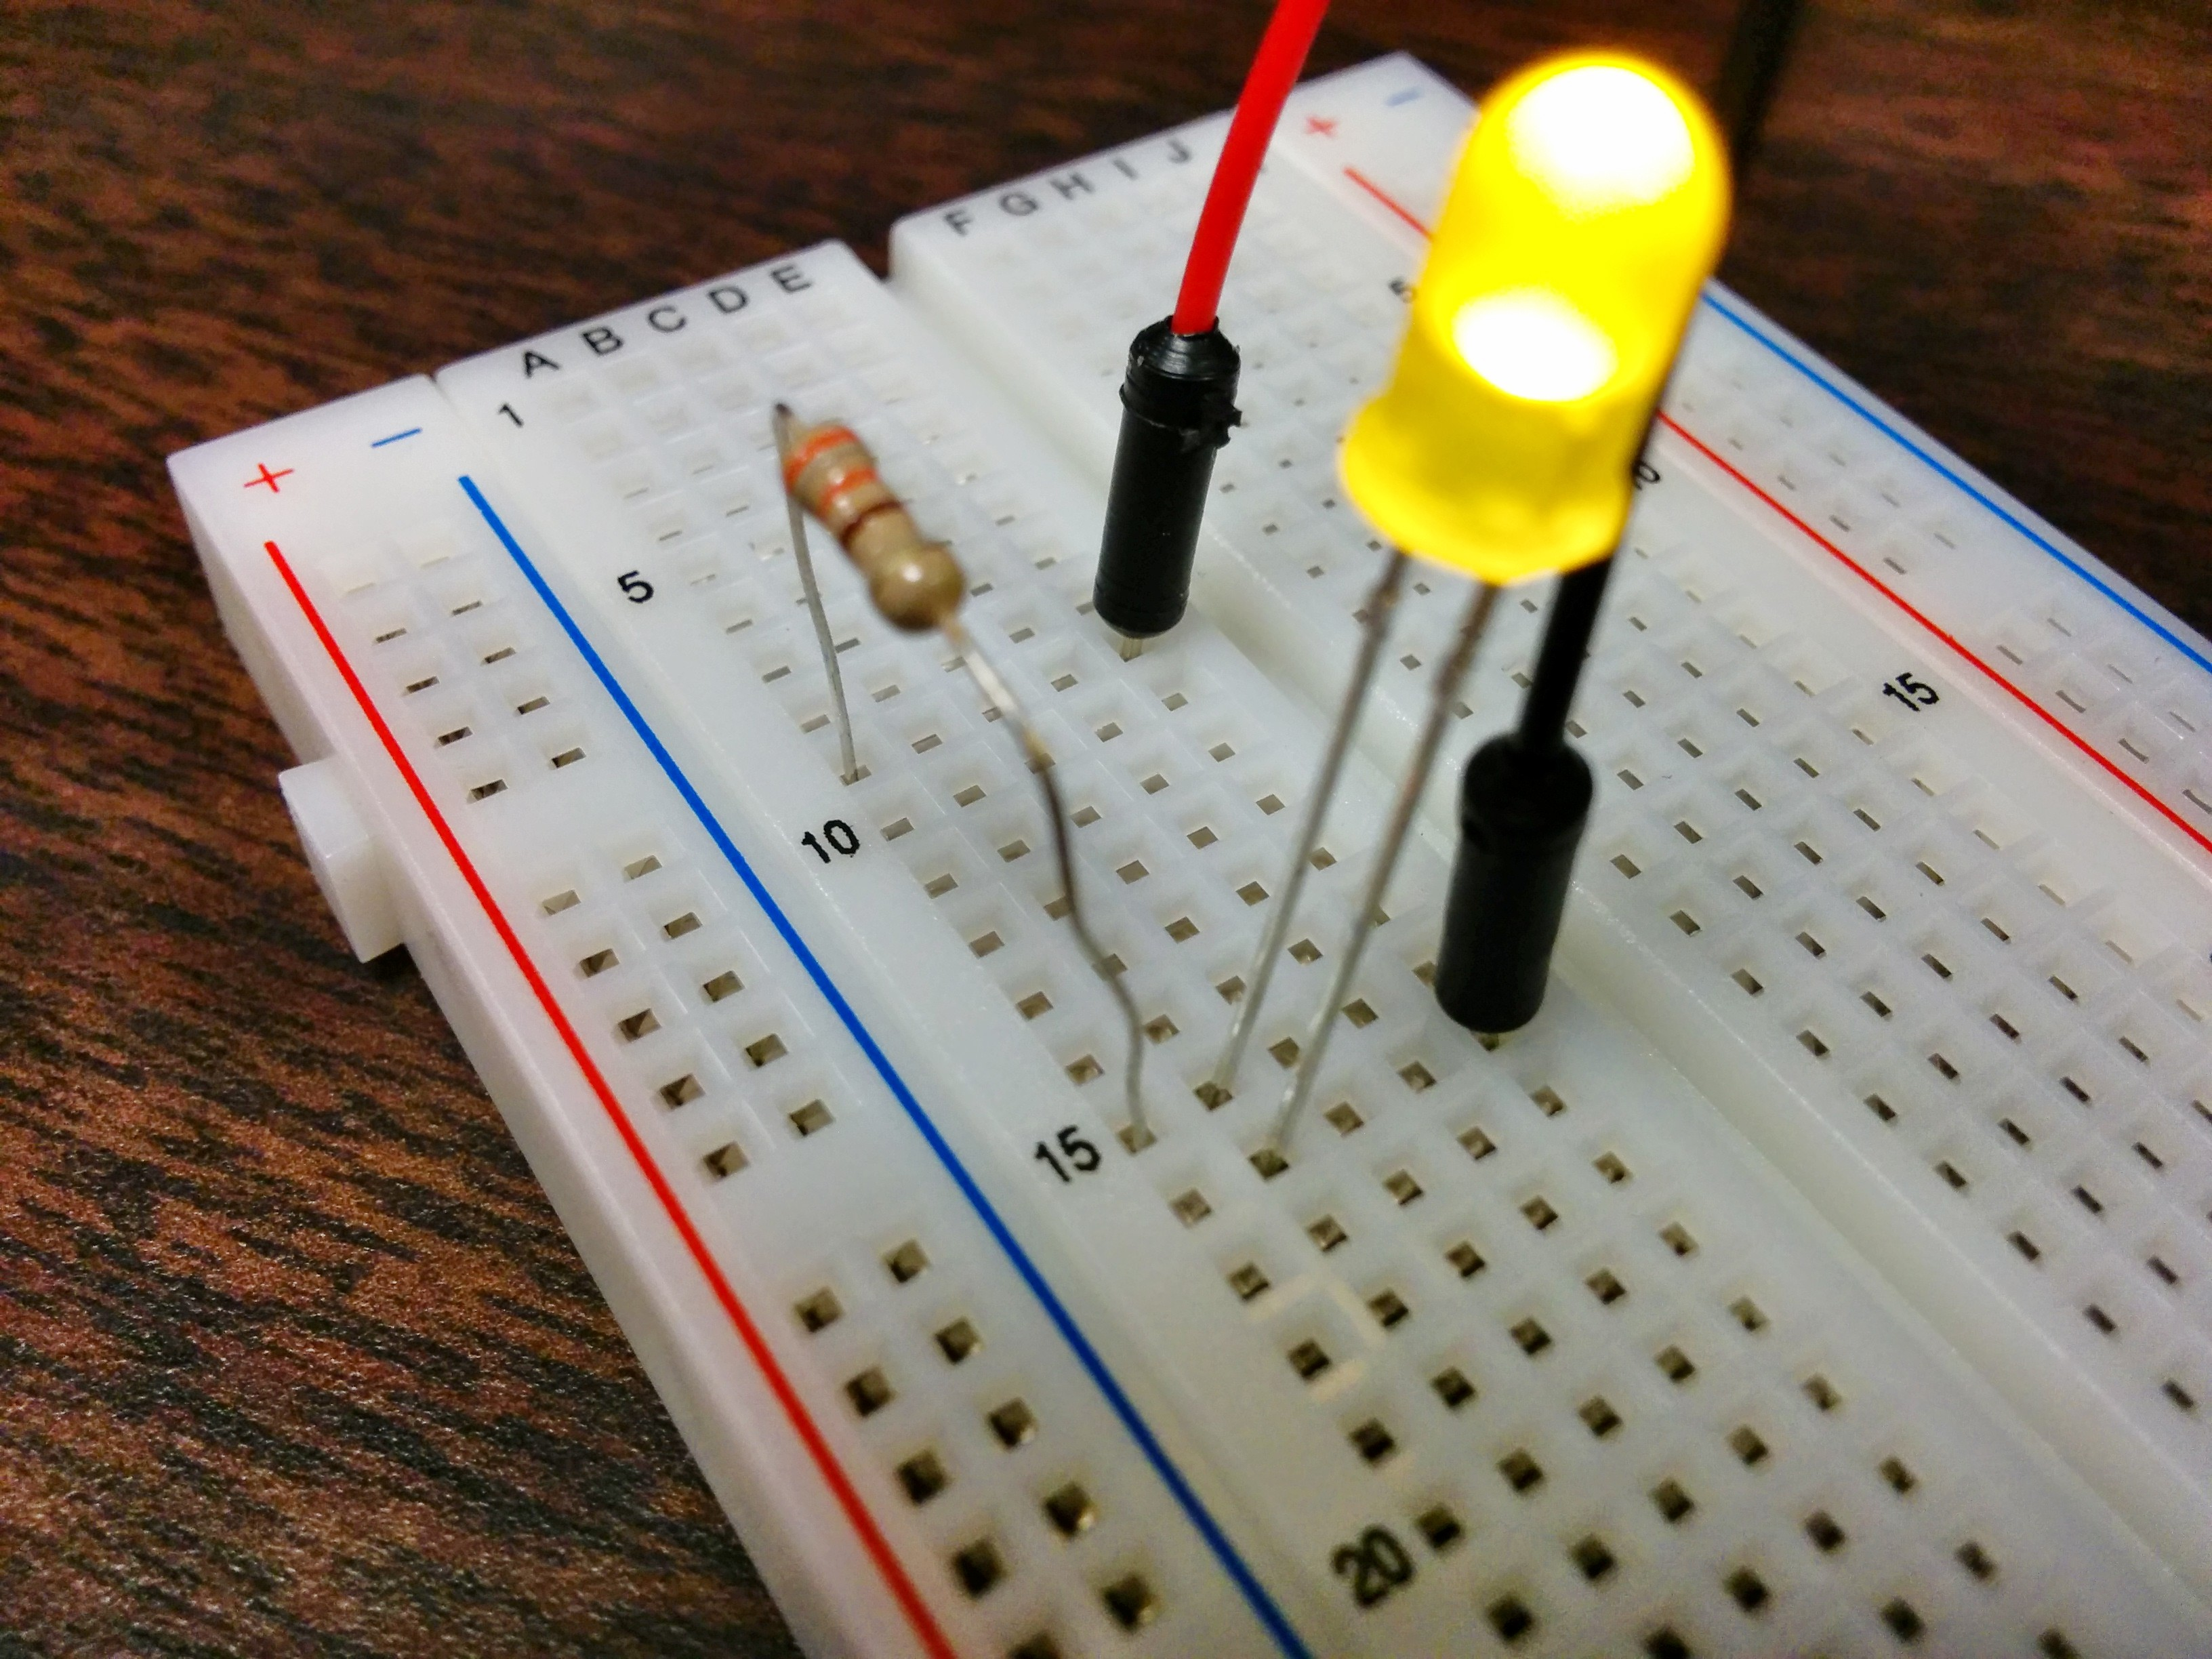 LED Blinky Breadboard Circuit